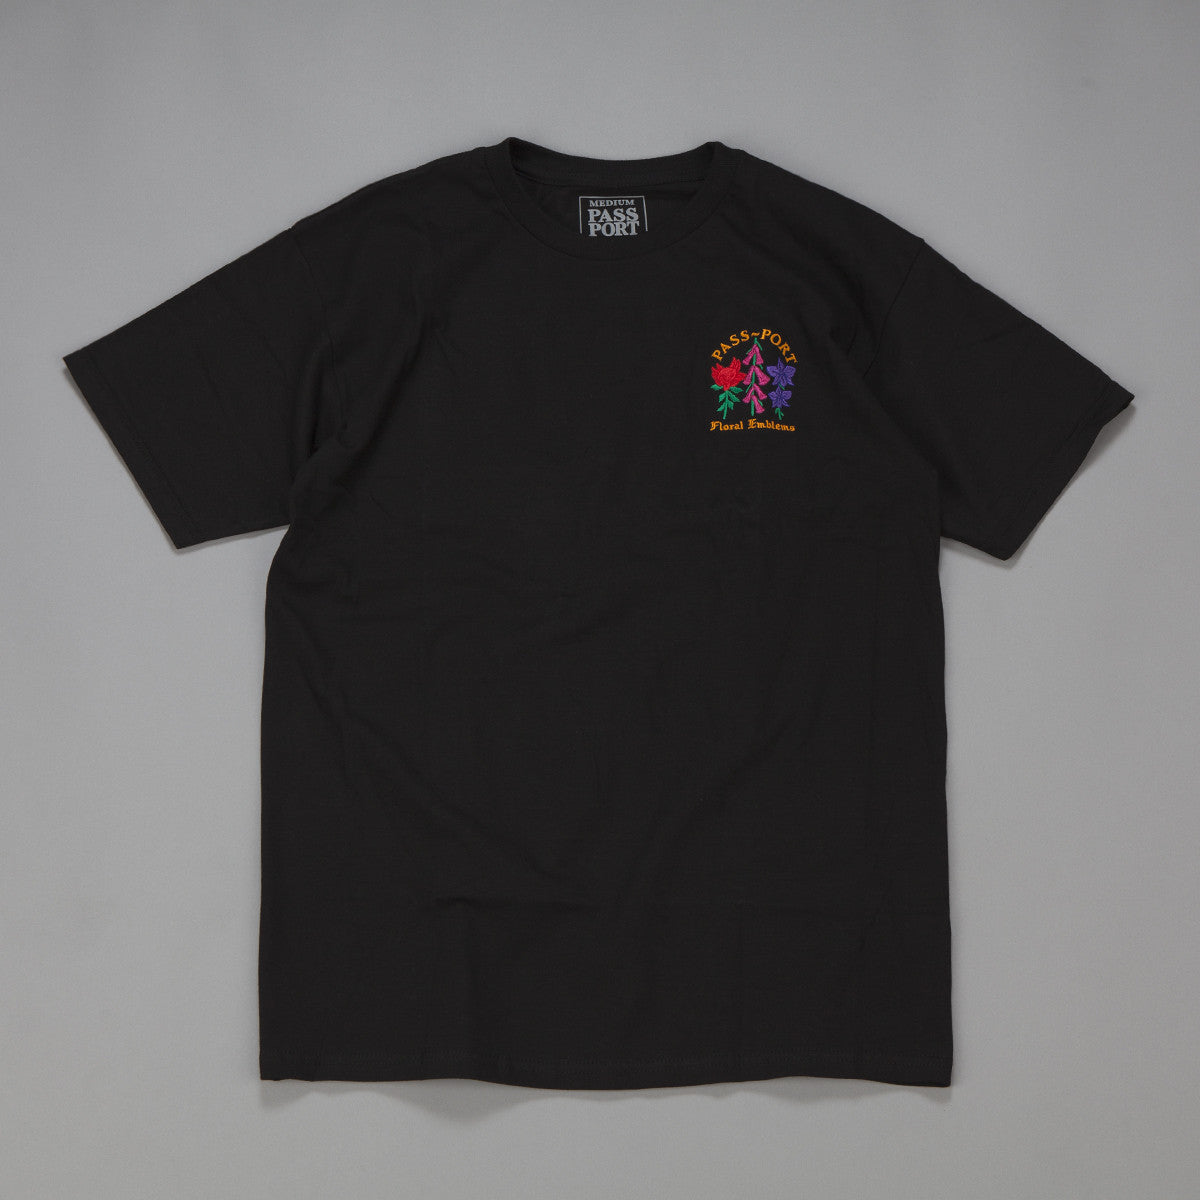 Pass Port Emblem Embroidered T-Shirt